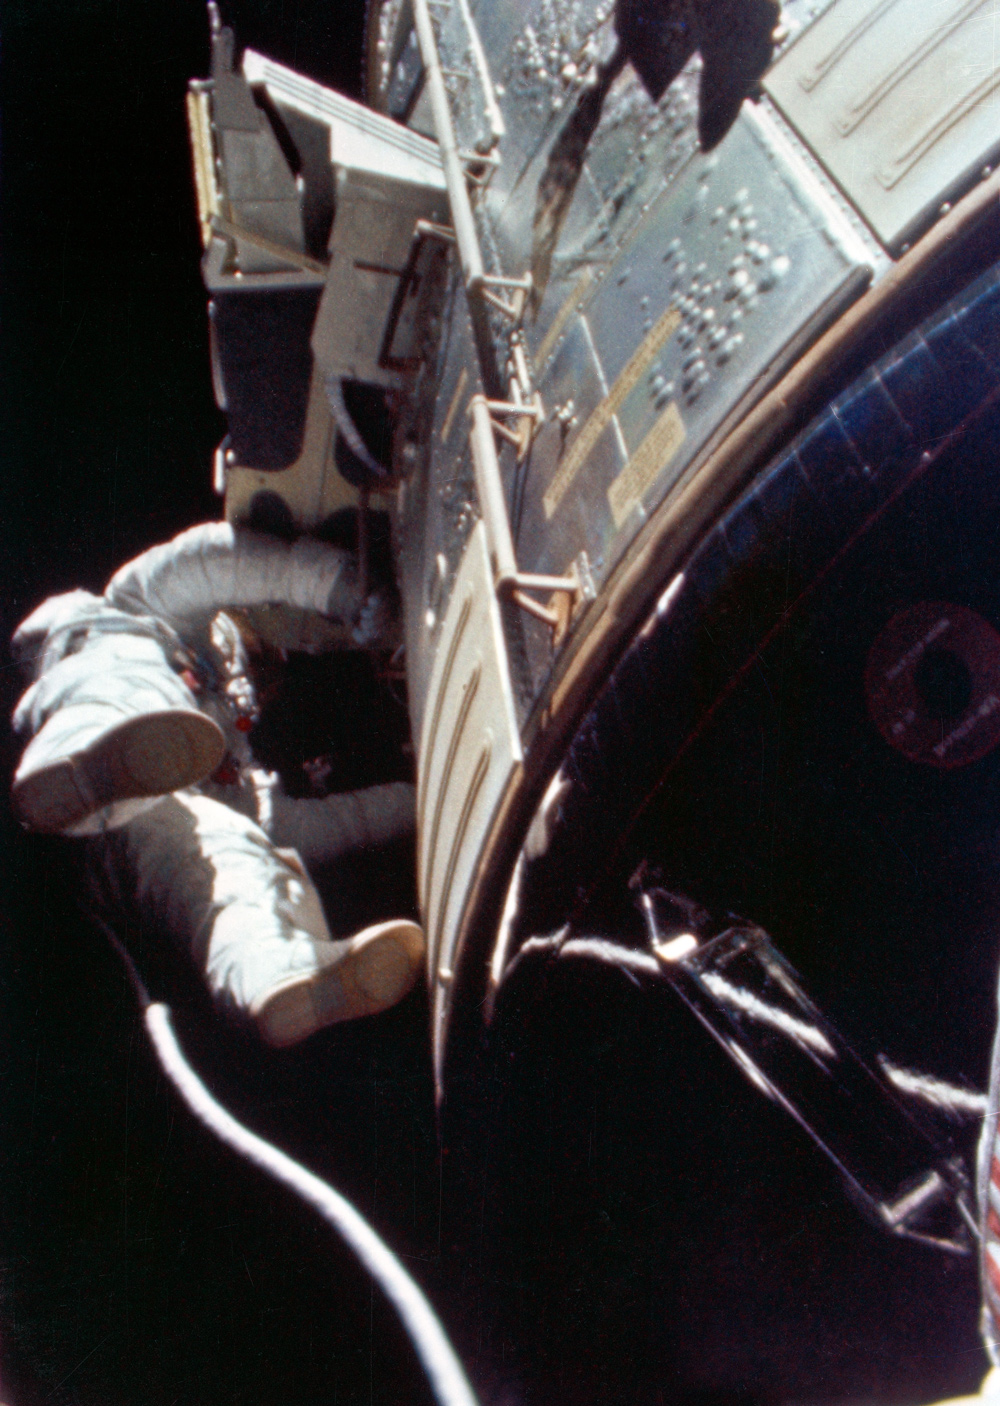 Astronaut floating in space outside spacecraft